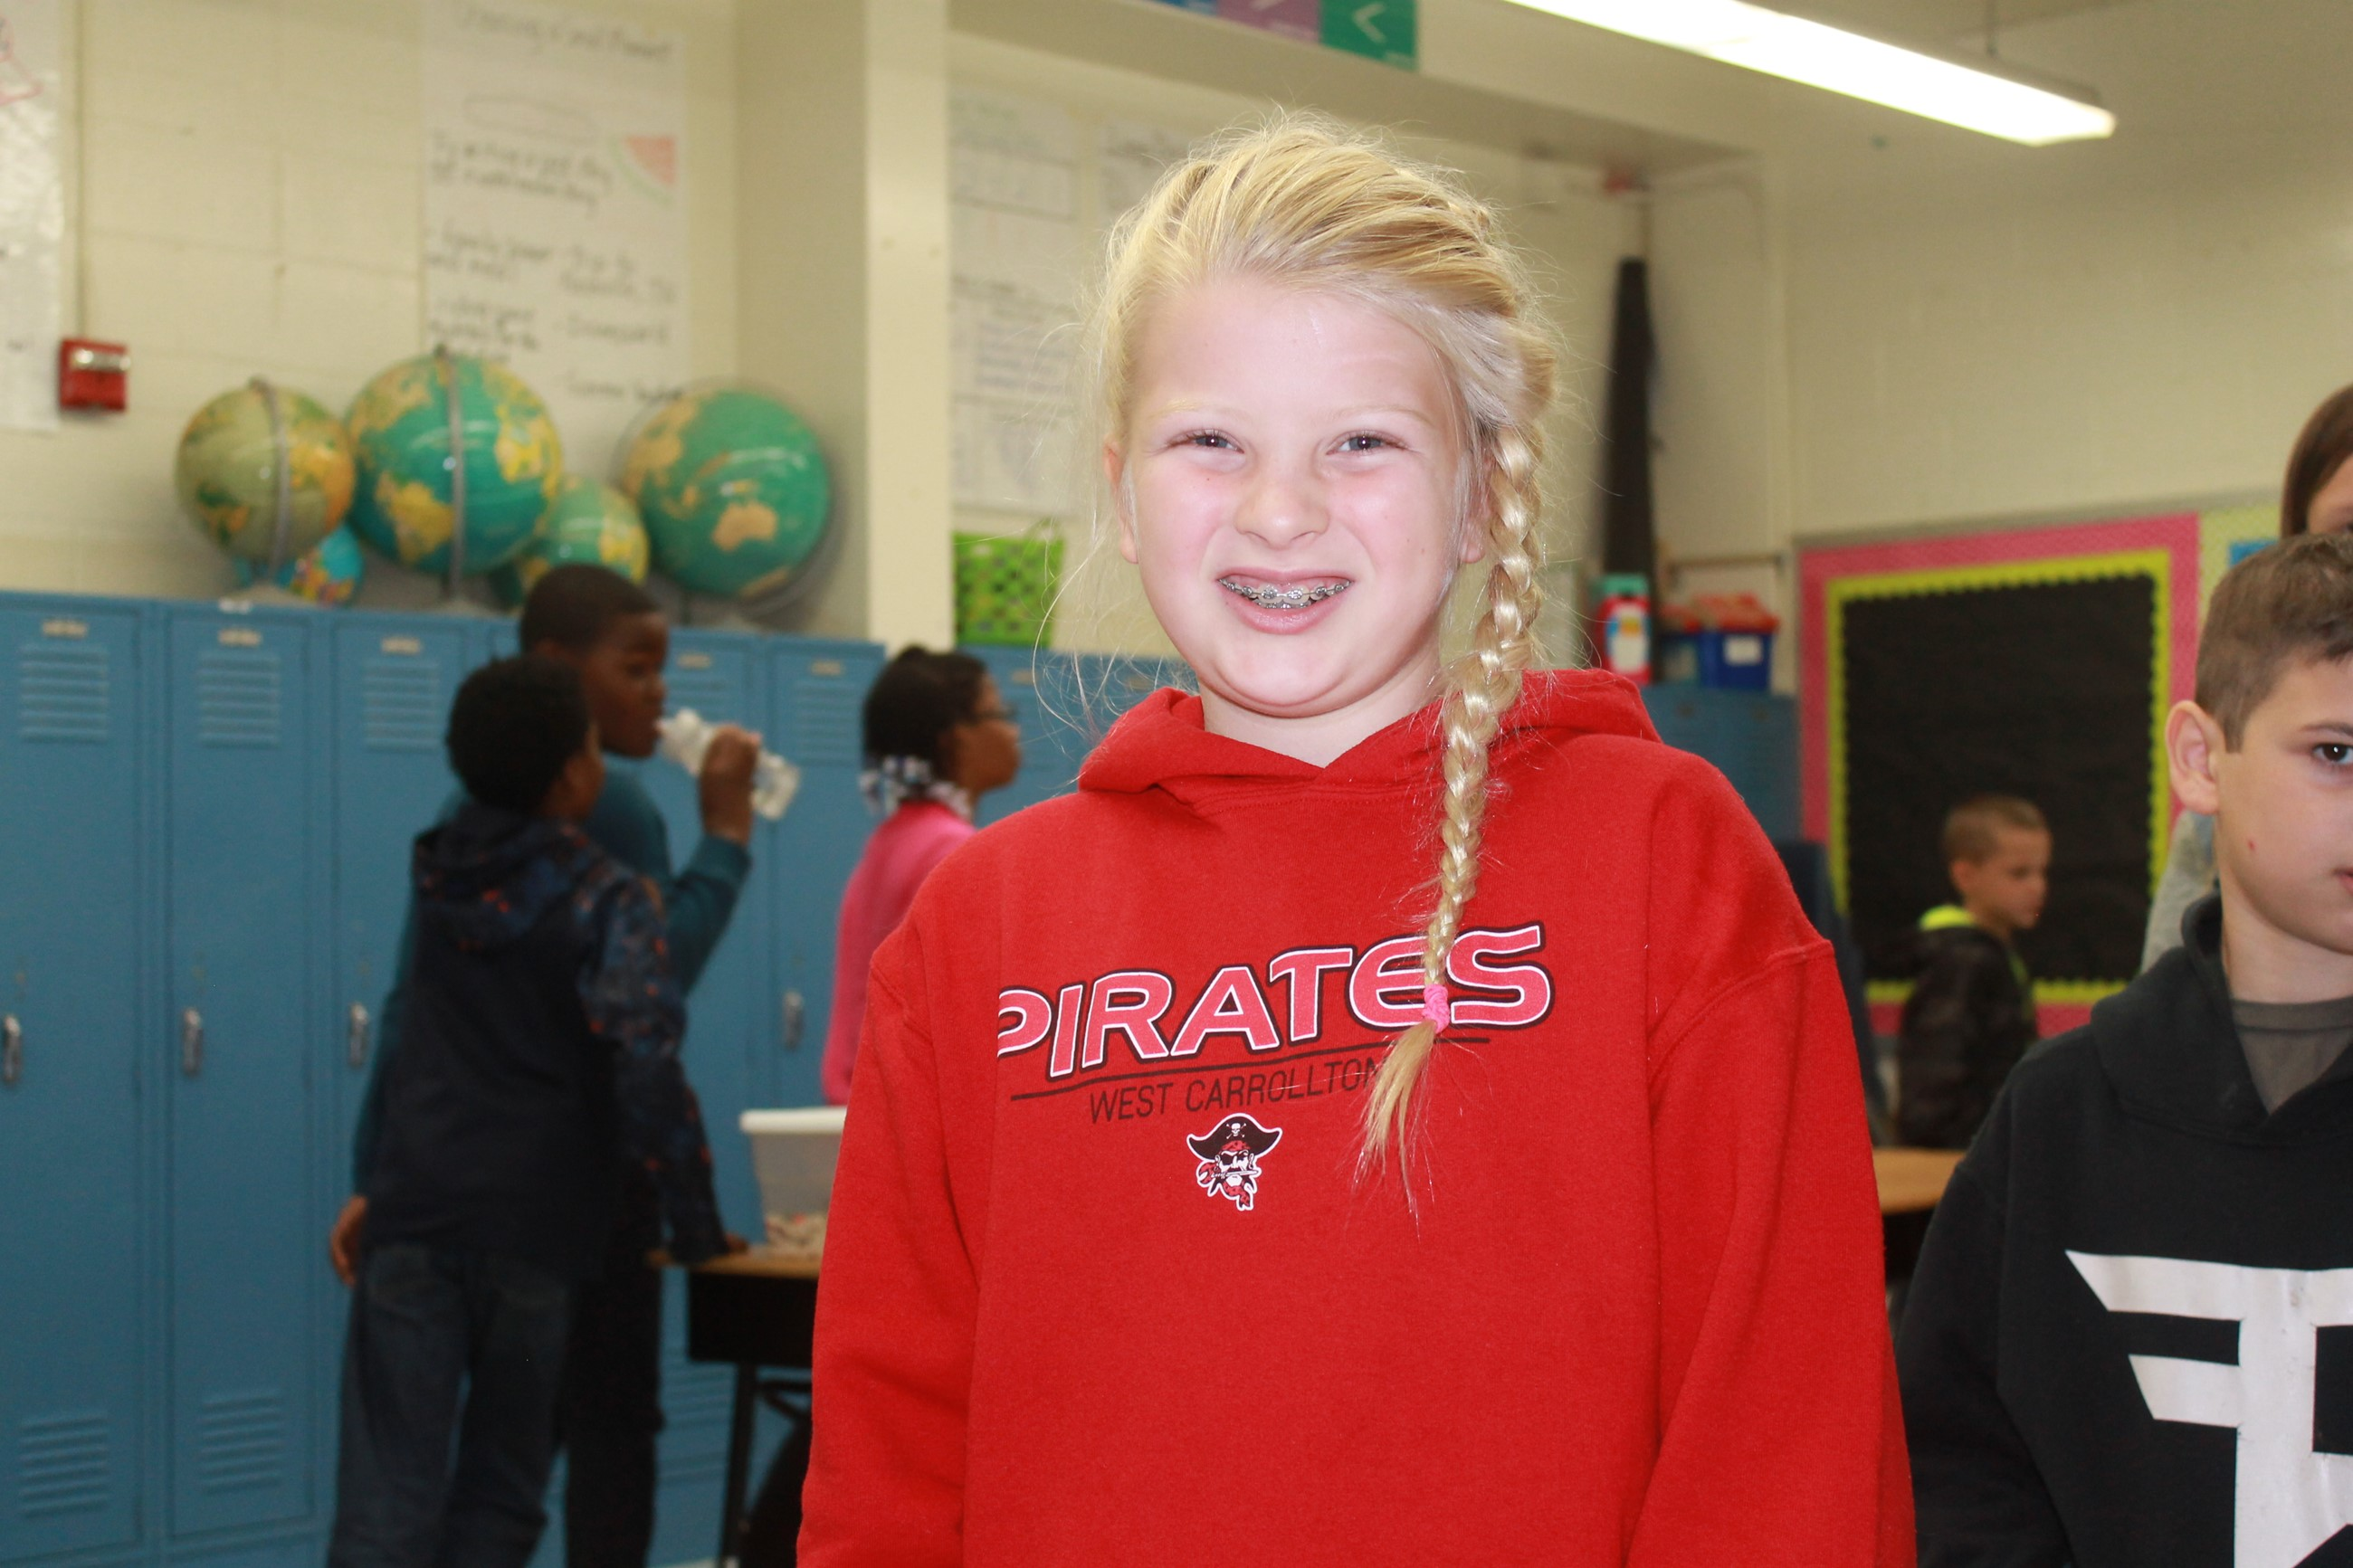 Girl Smiling with Pirate Shirt